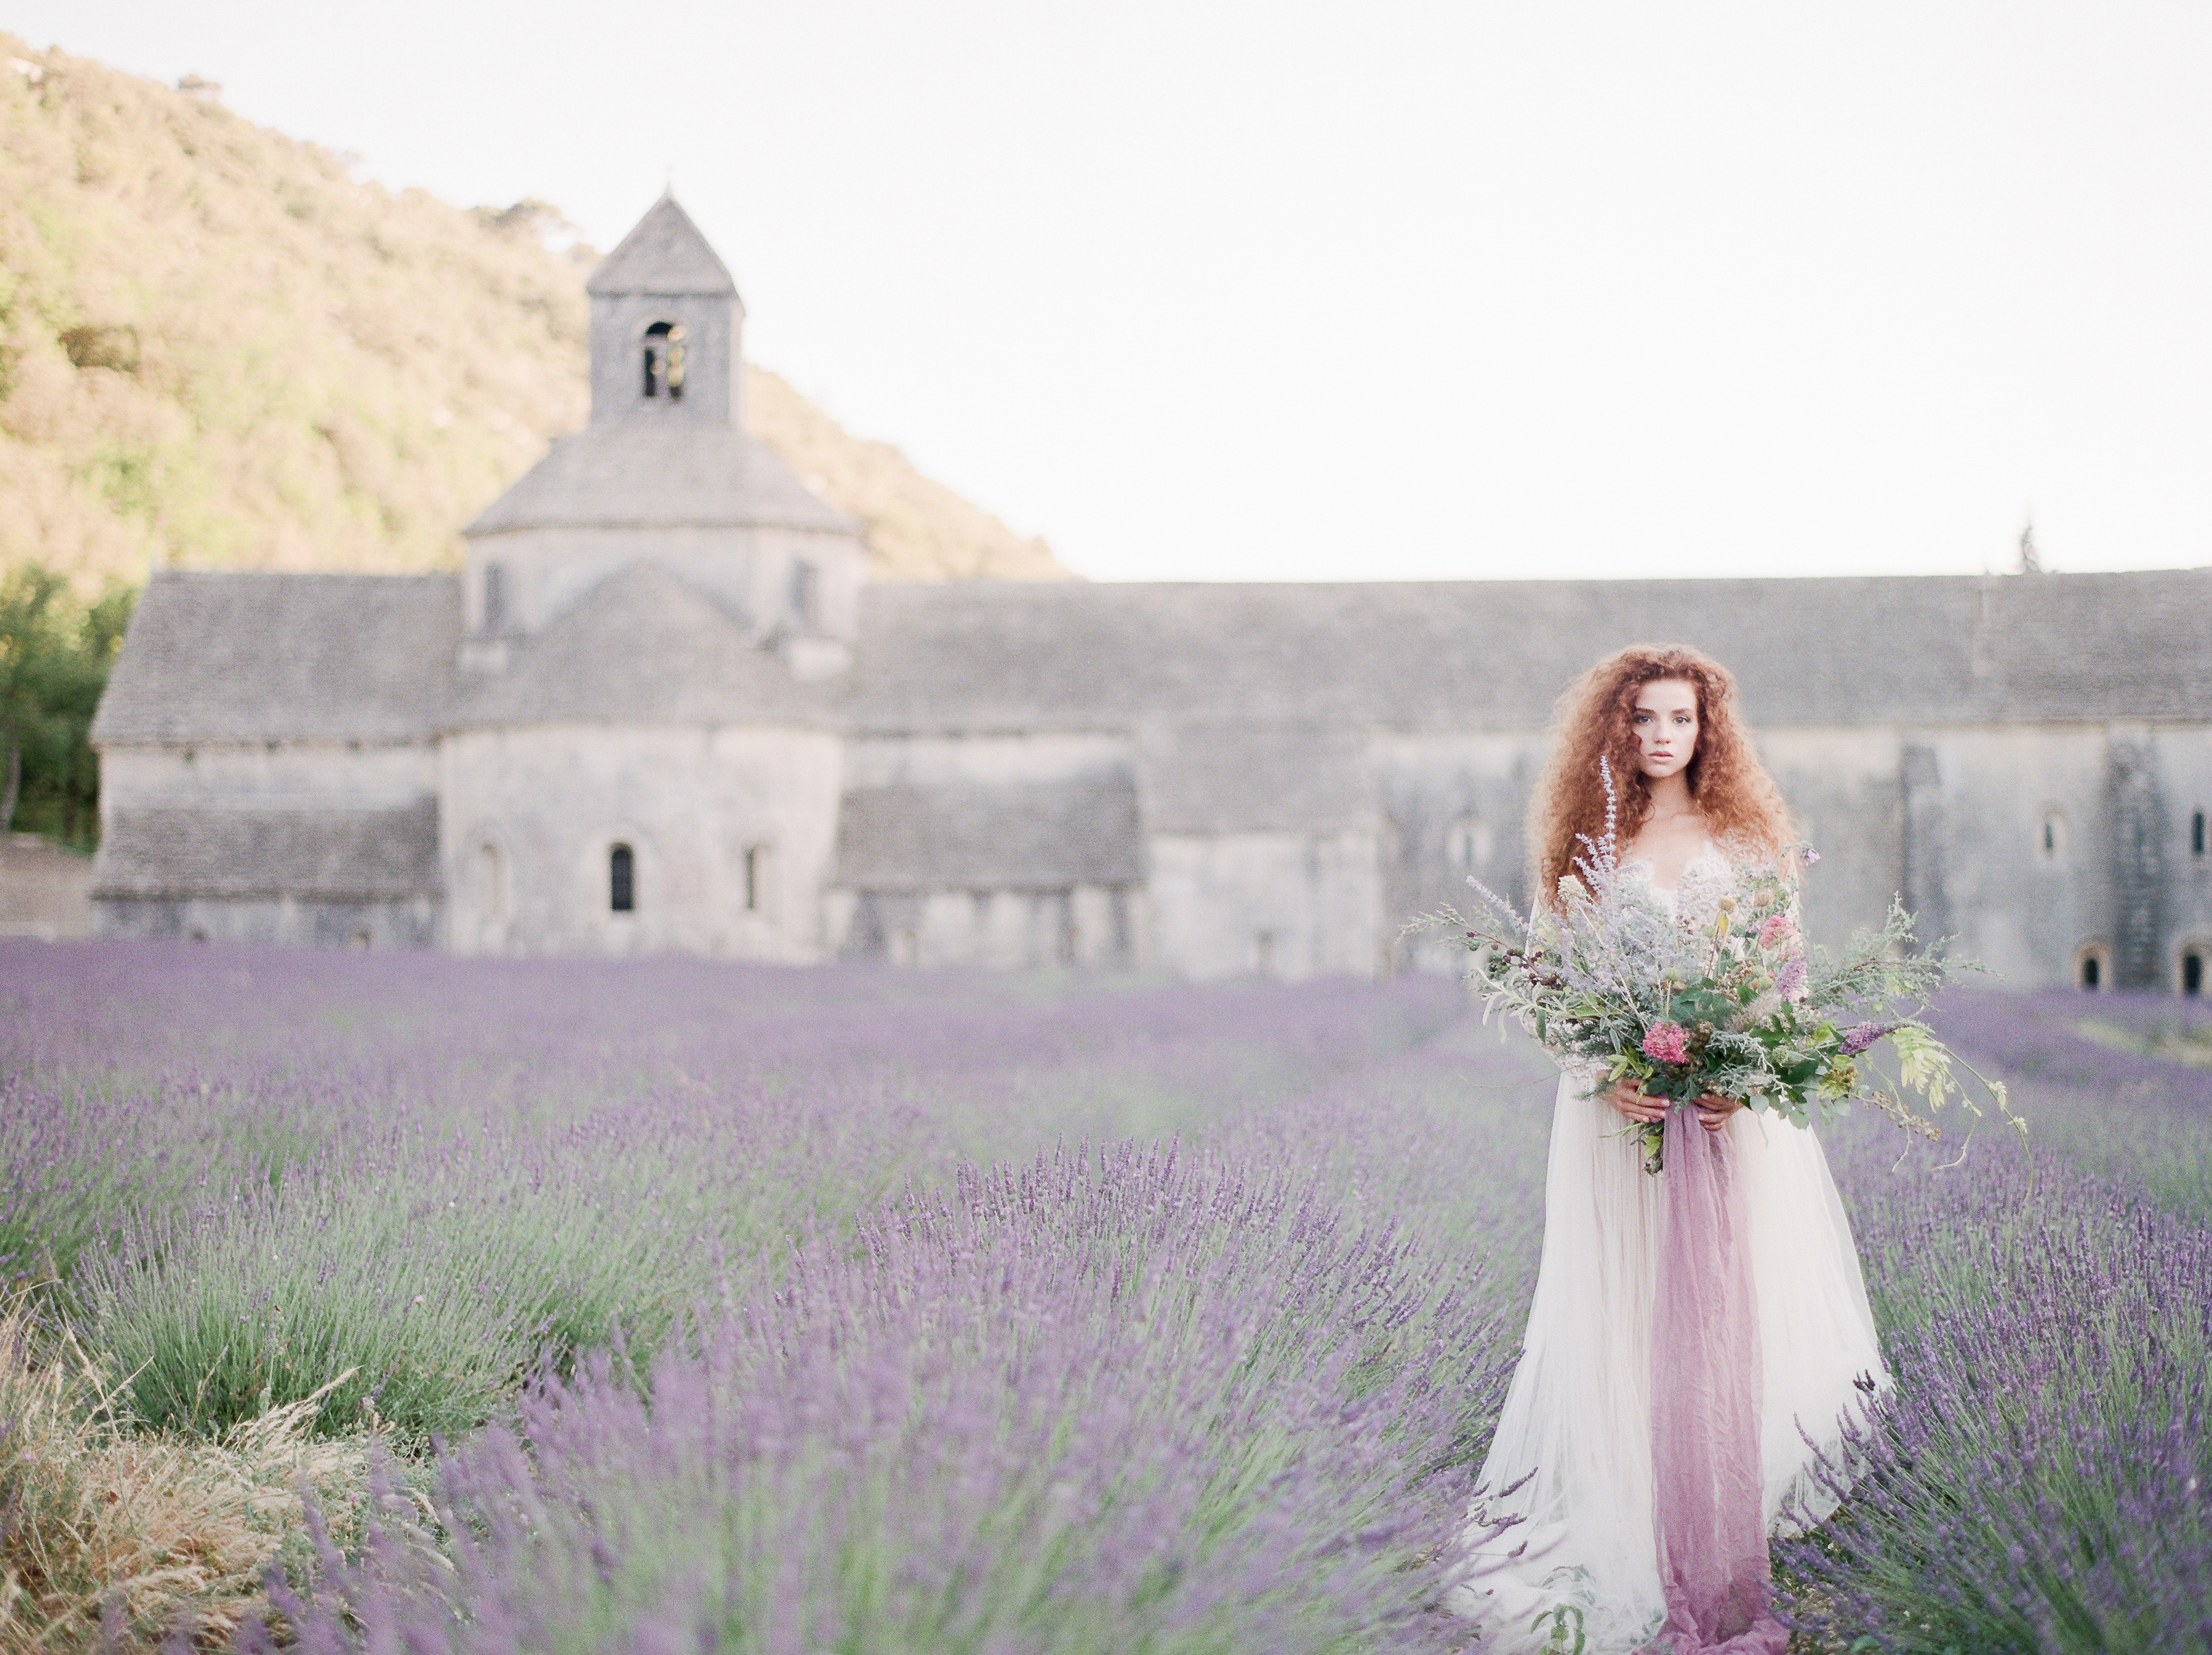 Julie Paisley, Artistic, Wedding Photography, Elopement, Elopement Photography, Bride in a Lavender Field, Destination Wedding, Destination Photographer,Travel